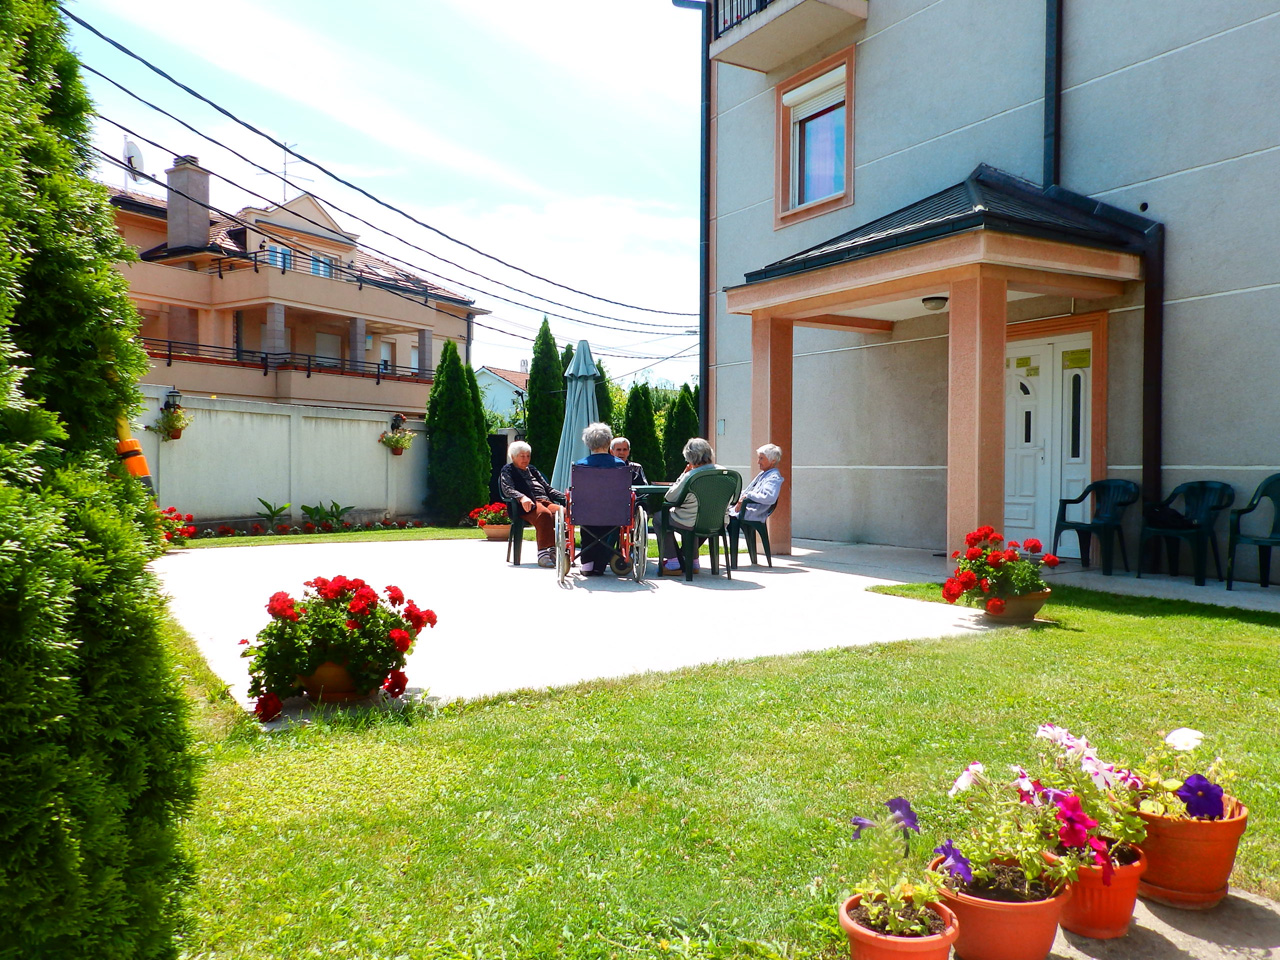 HOME FOR OLD MILAGRO CASA Homes and care for the elderly Beograd